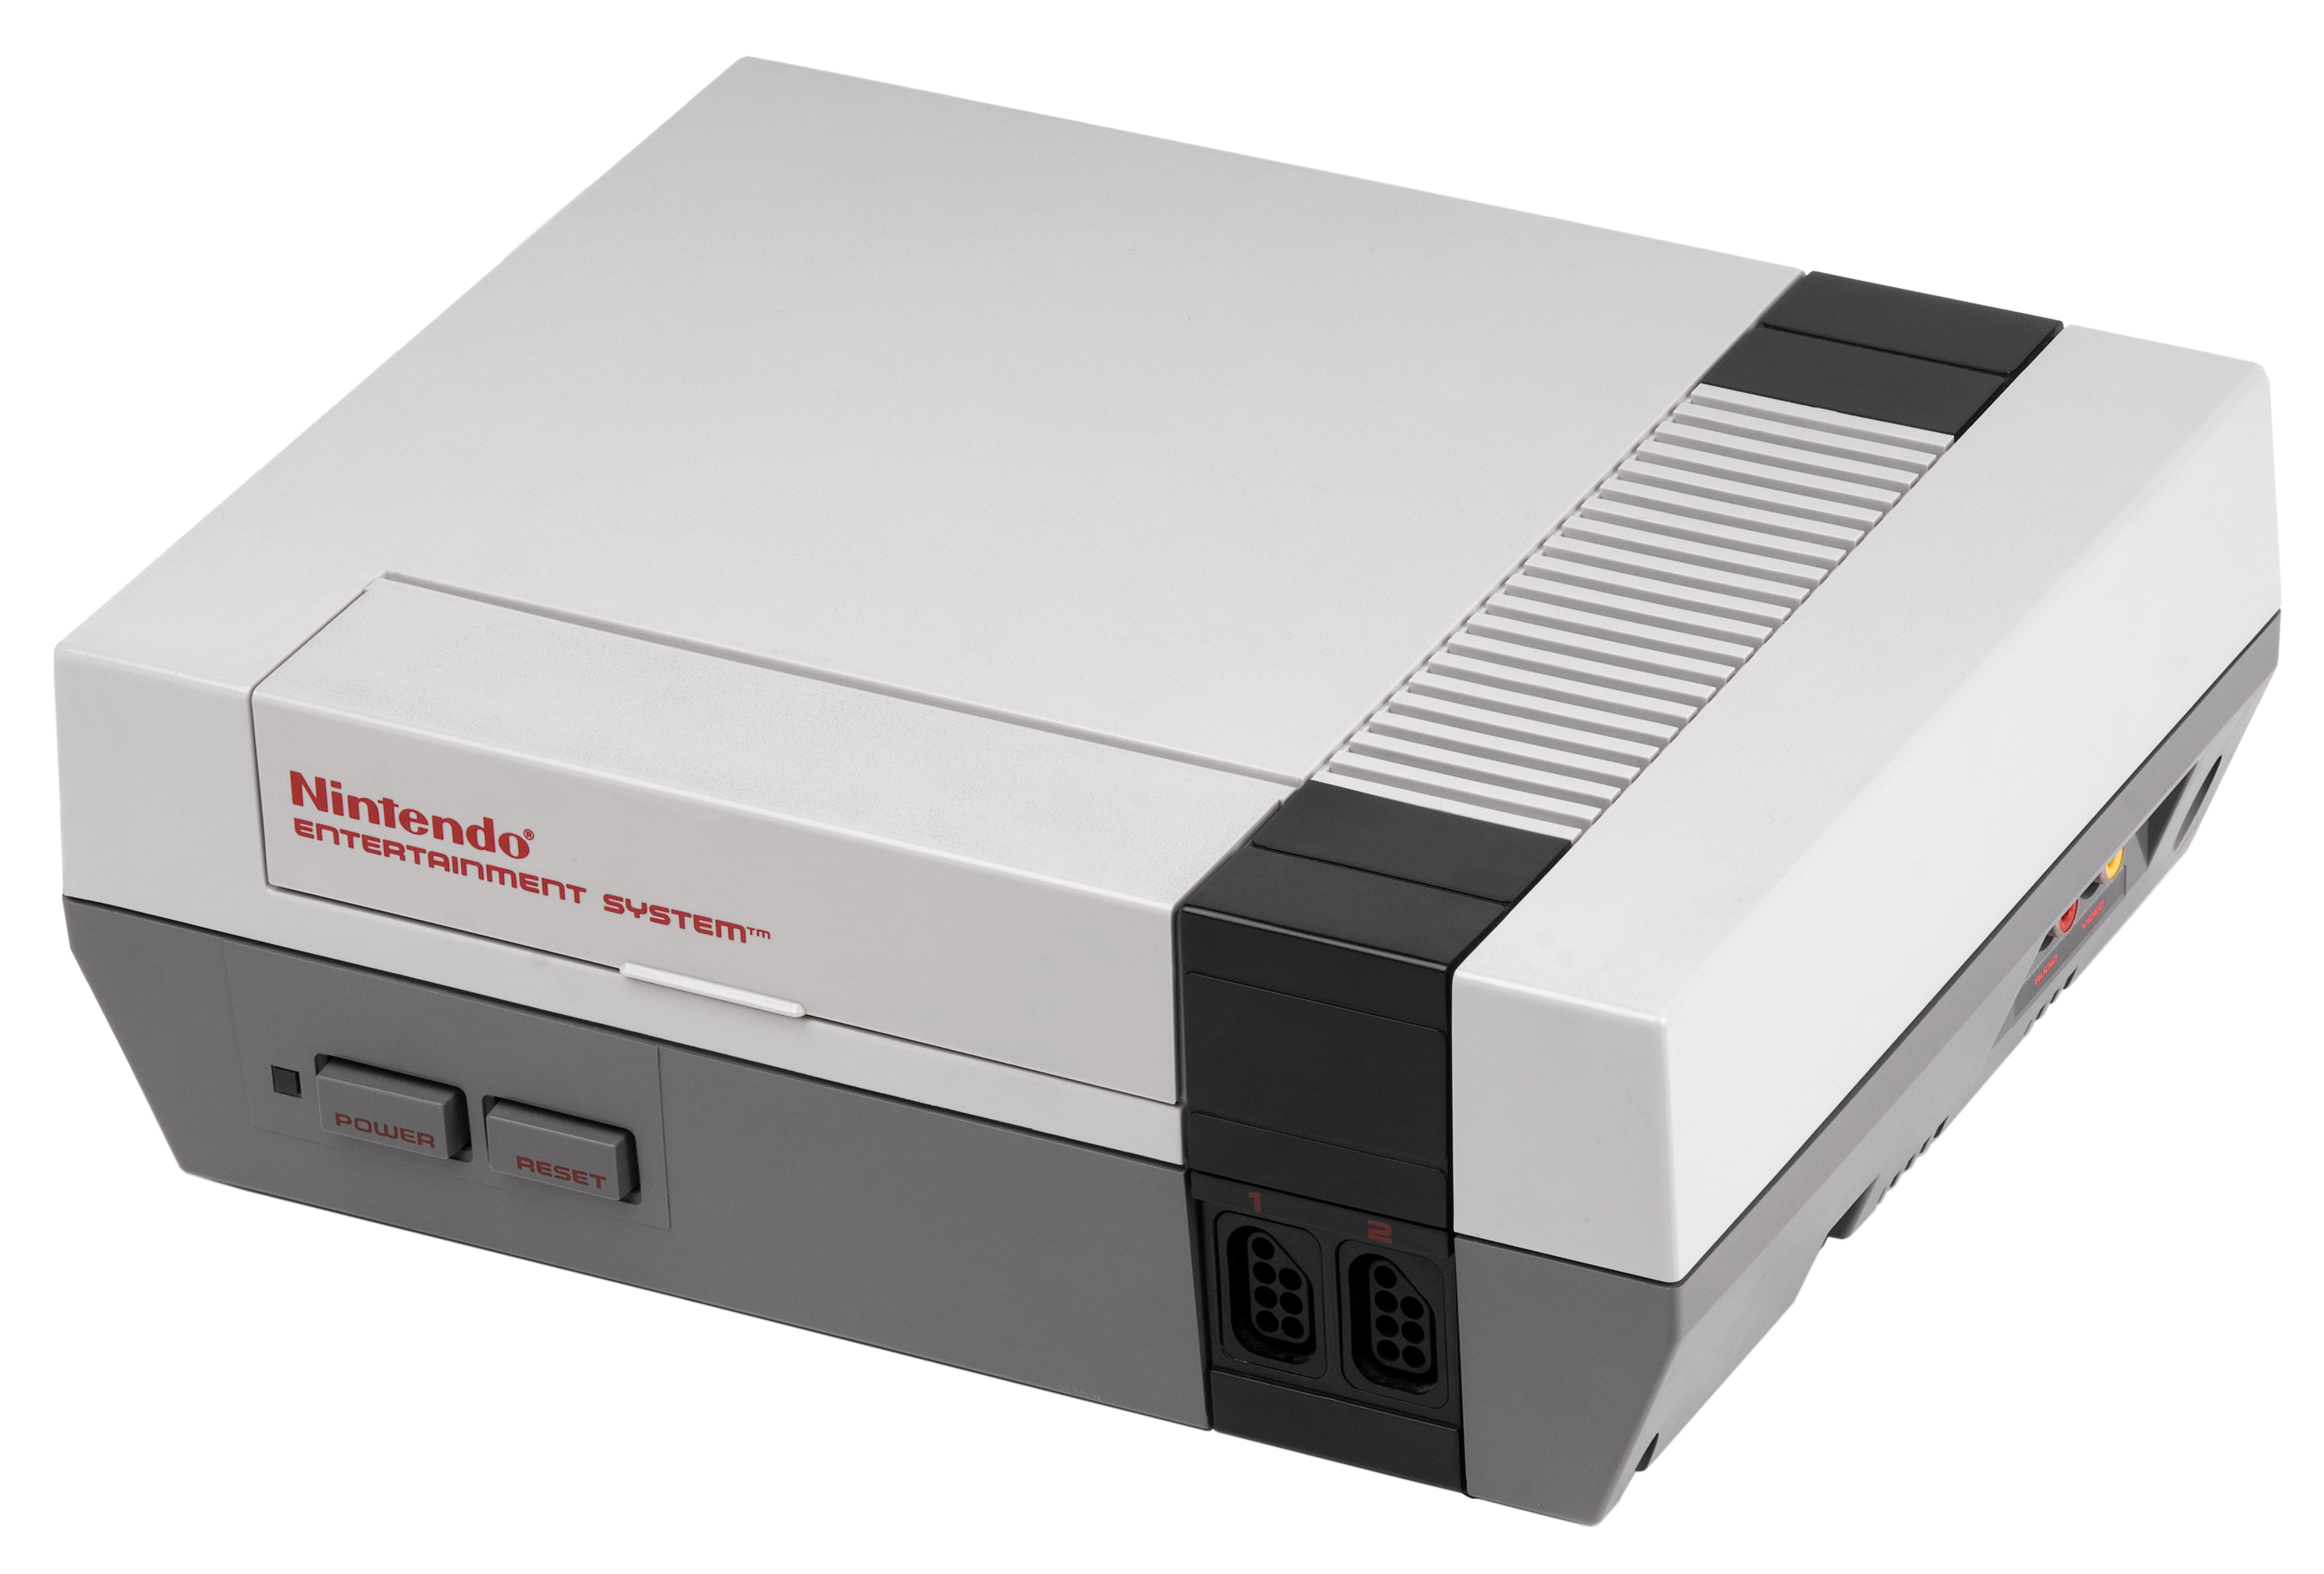 Nintendo Retrospective: The Nintendo Entertainment System